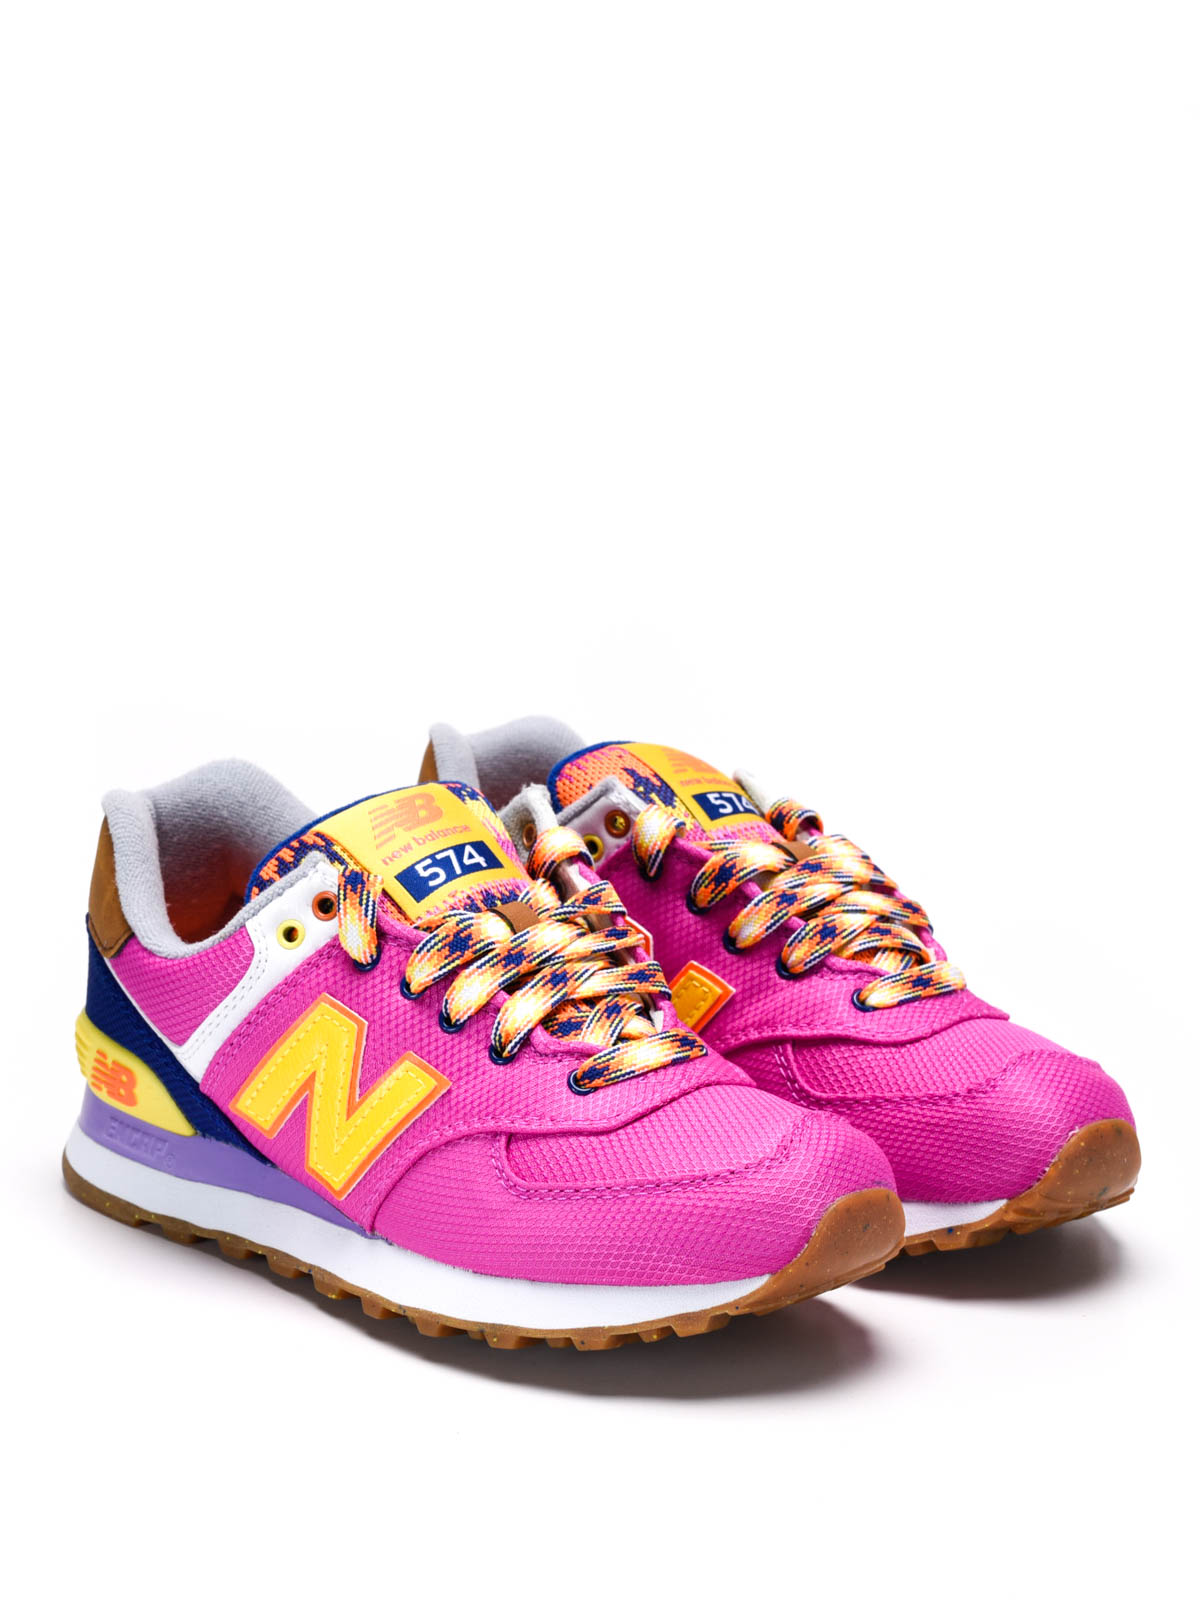 new balance 574 high off 68% - webpointsolutions.co.in